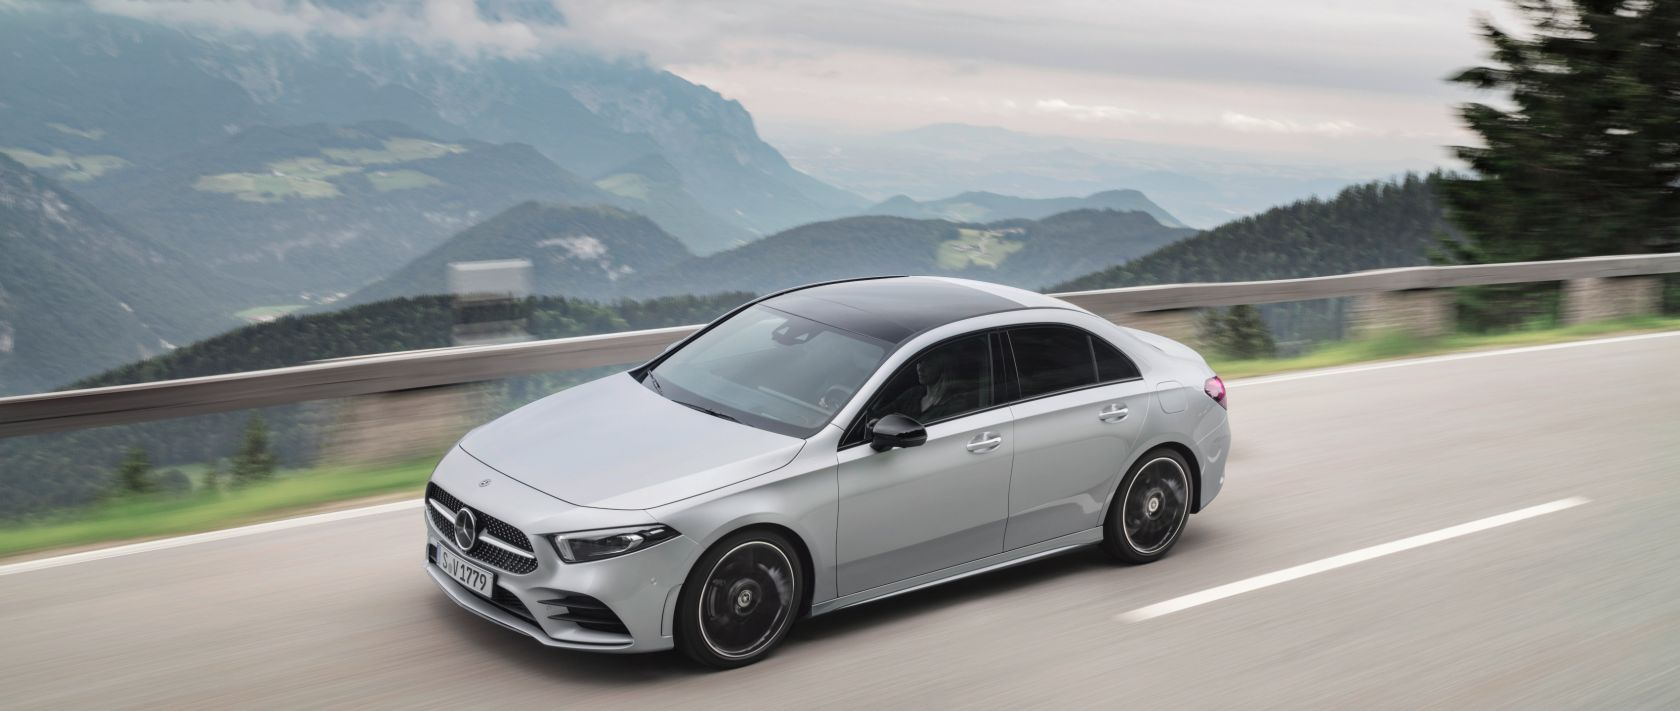 The new 2019 Mercedes-Benz A-Class Saloon (V 177) AMG Line black in iridium silver on a country road.